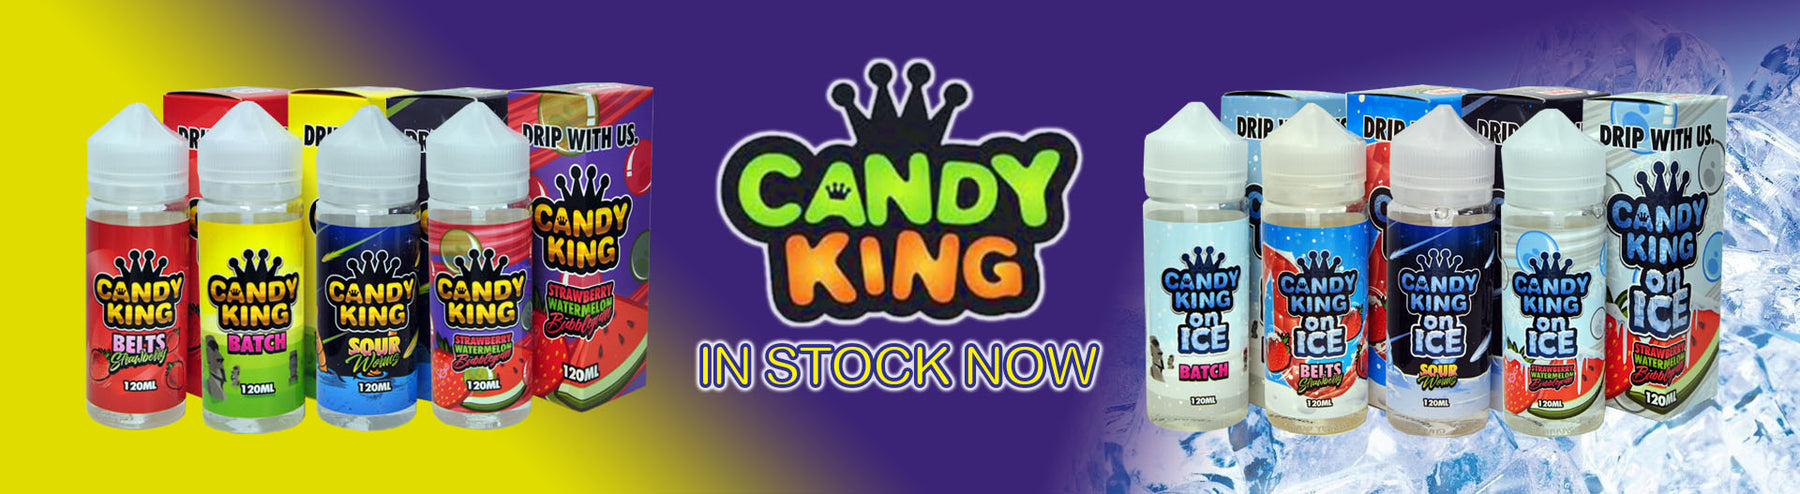 Best E liquid flavours and E juice brands - Candy King